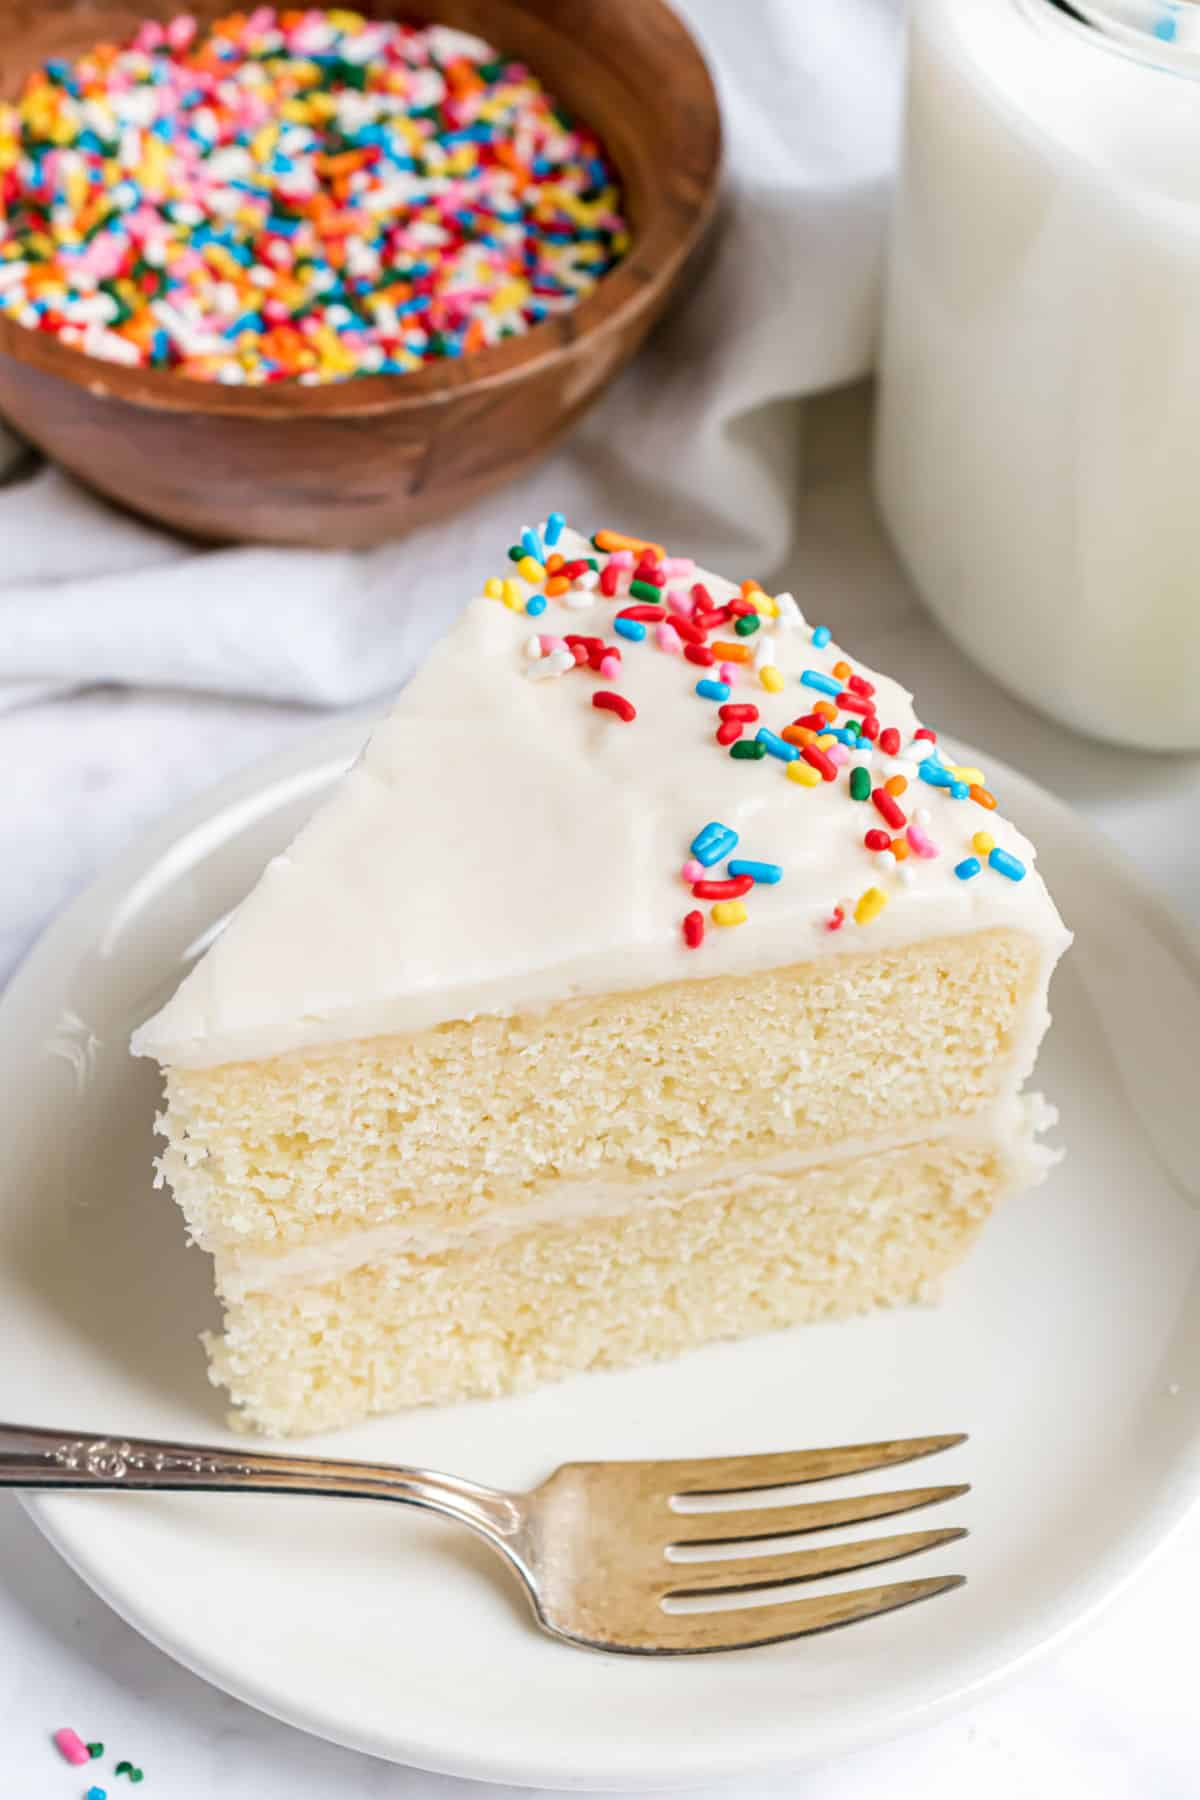 Slice of vanilla cake with sour cream frosting and sprinkles on a white plate with fork.